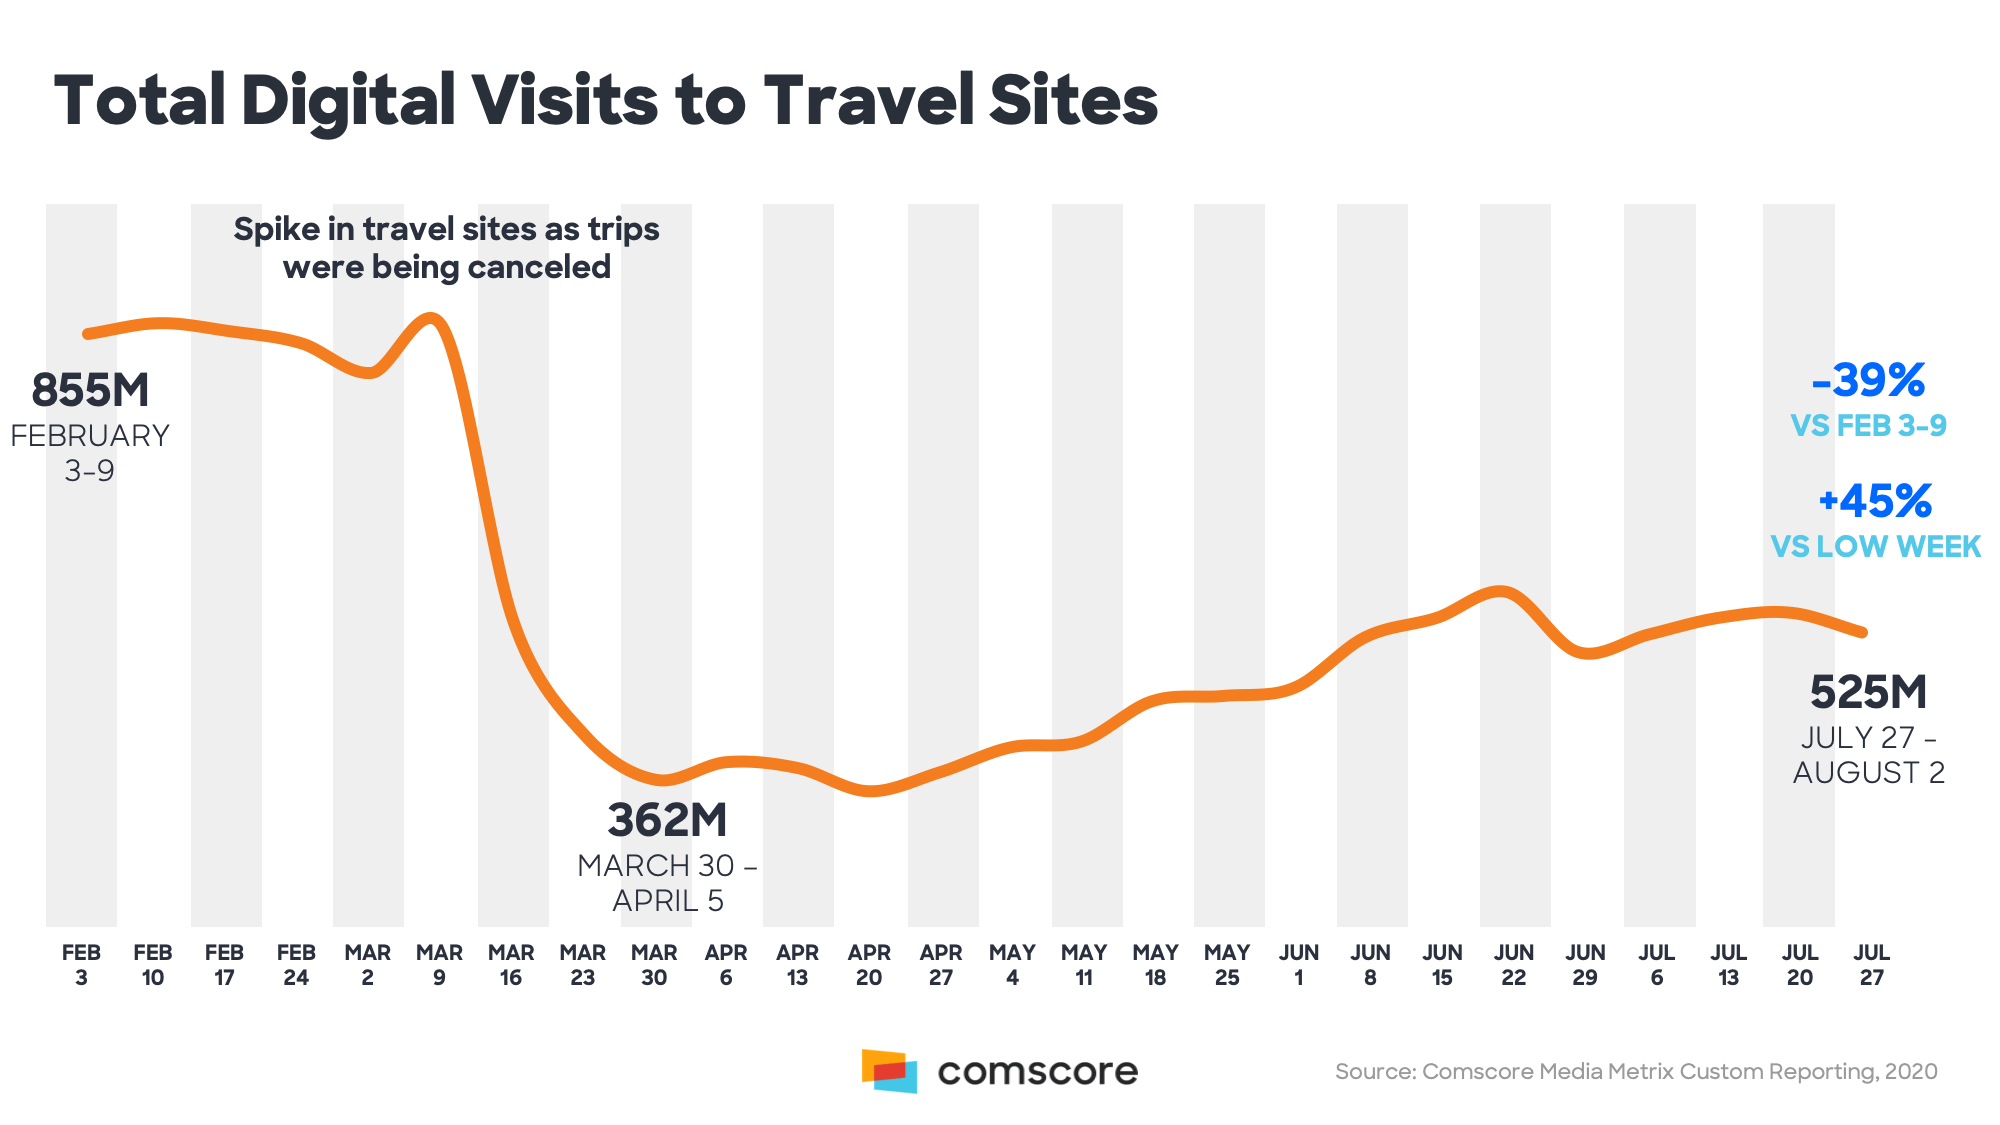 Total Digital Visits to Travel Sites